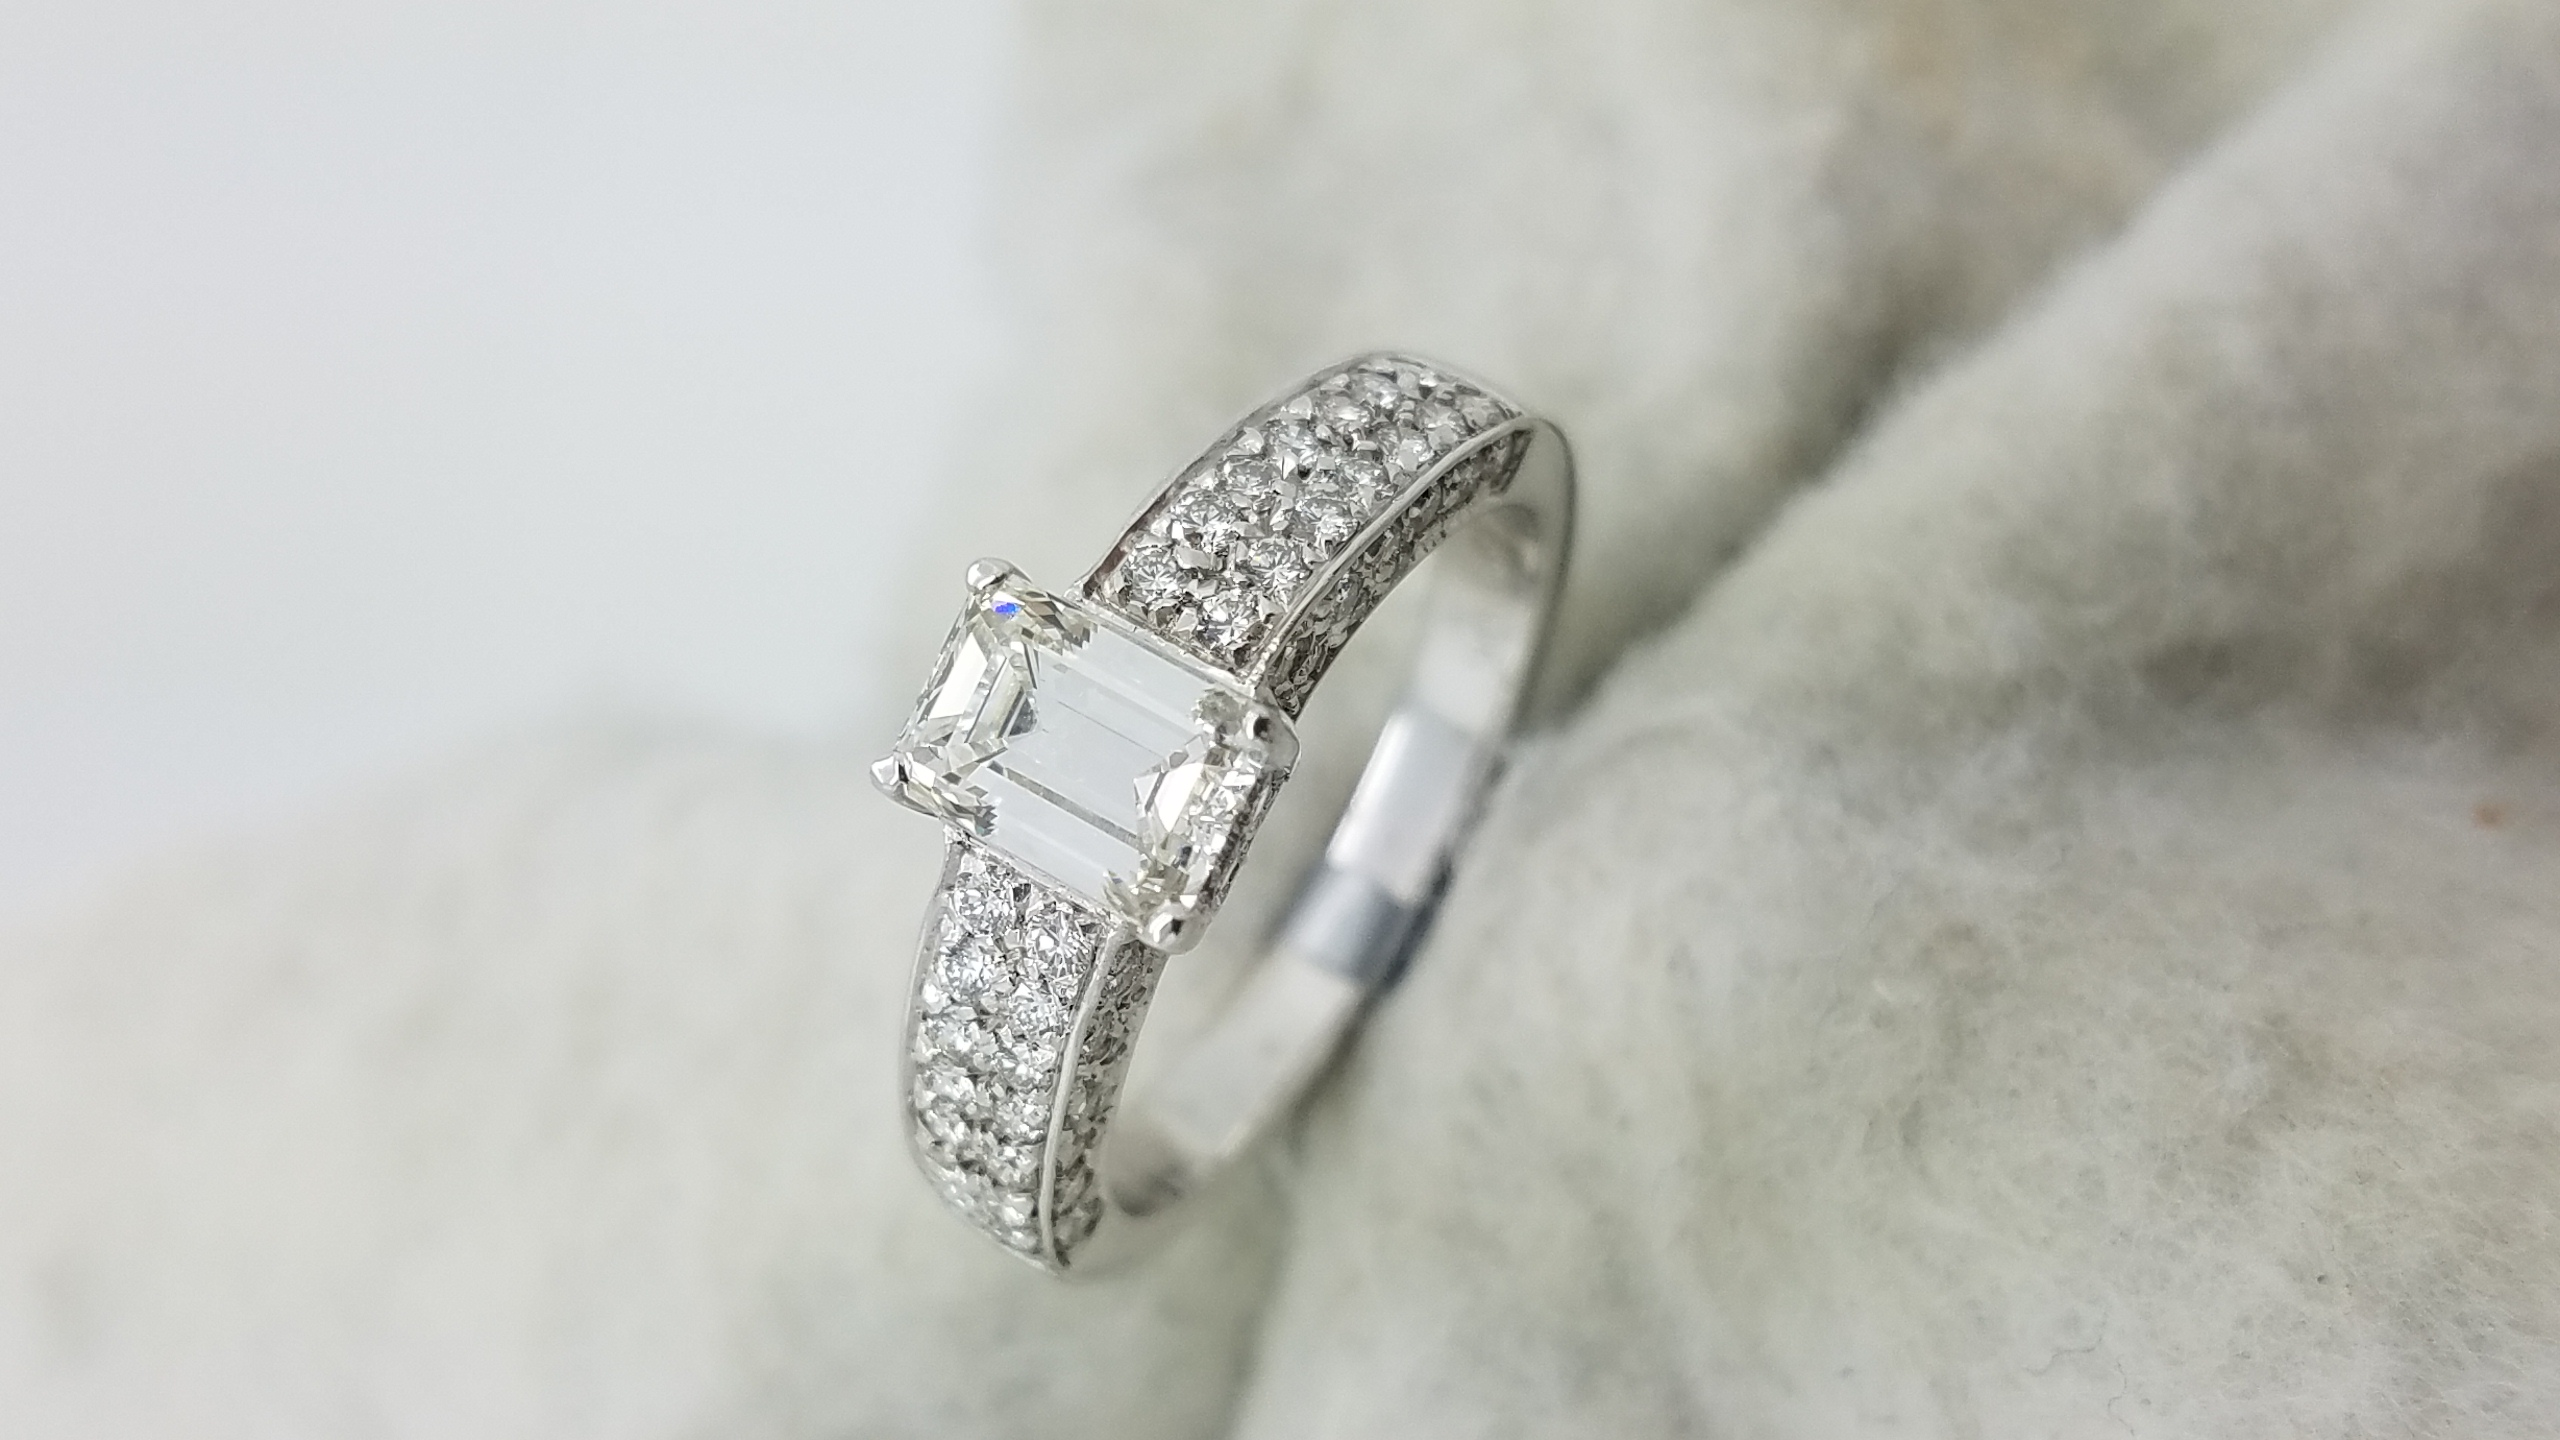 18KWhite Goldhalf pave0.95+1.25ct.EM+RCutDiamondIVS14-prong and paveSolitaire with AccentsEngagement-Ring